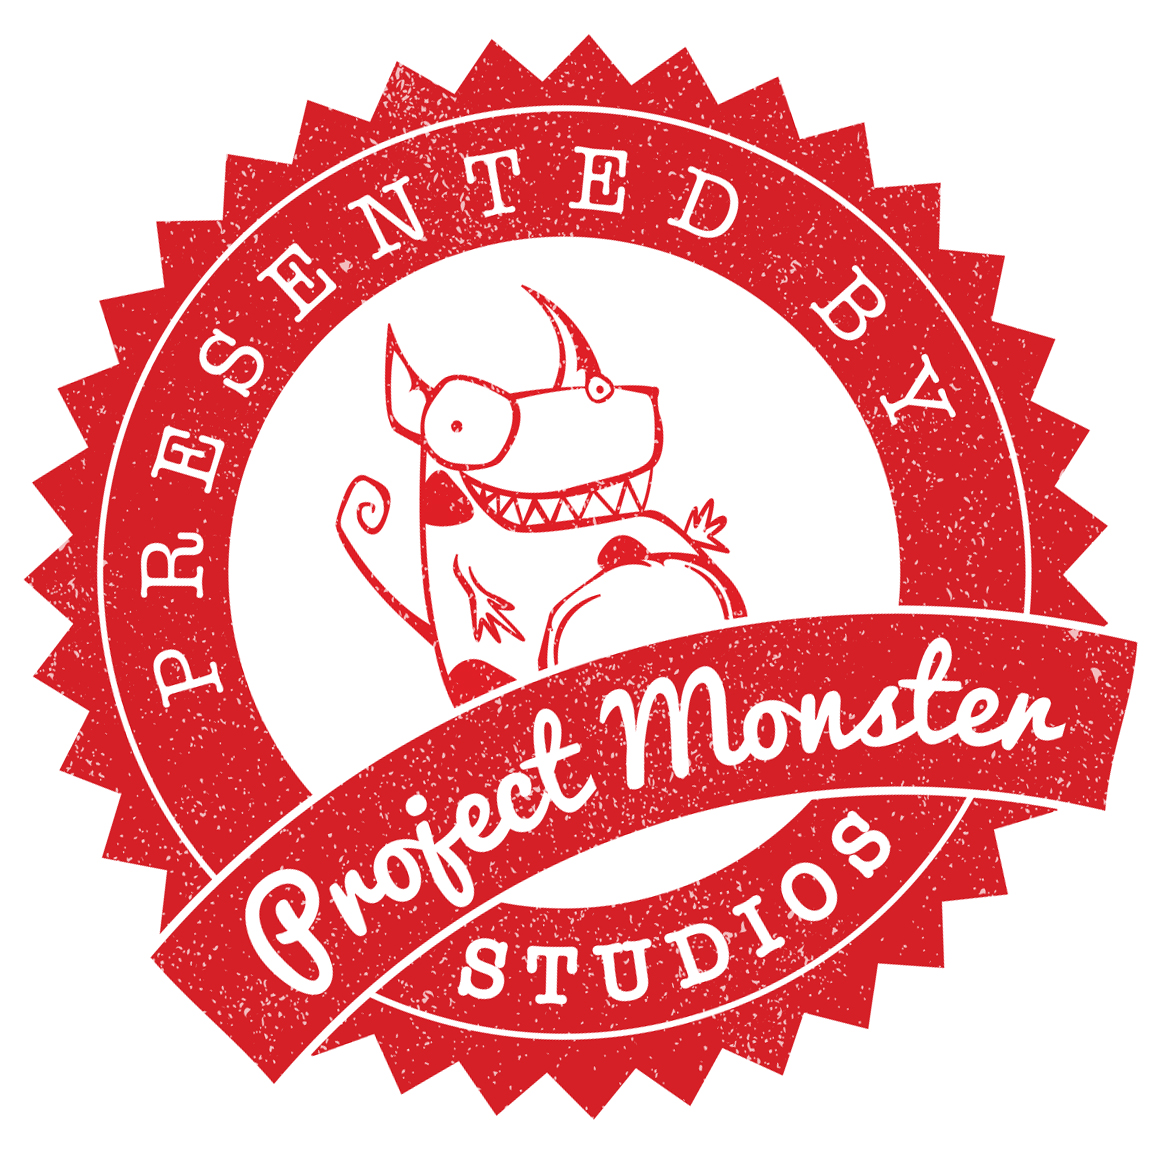 Project Monster Studios